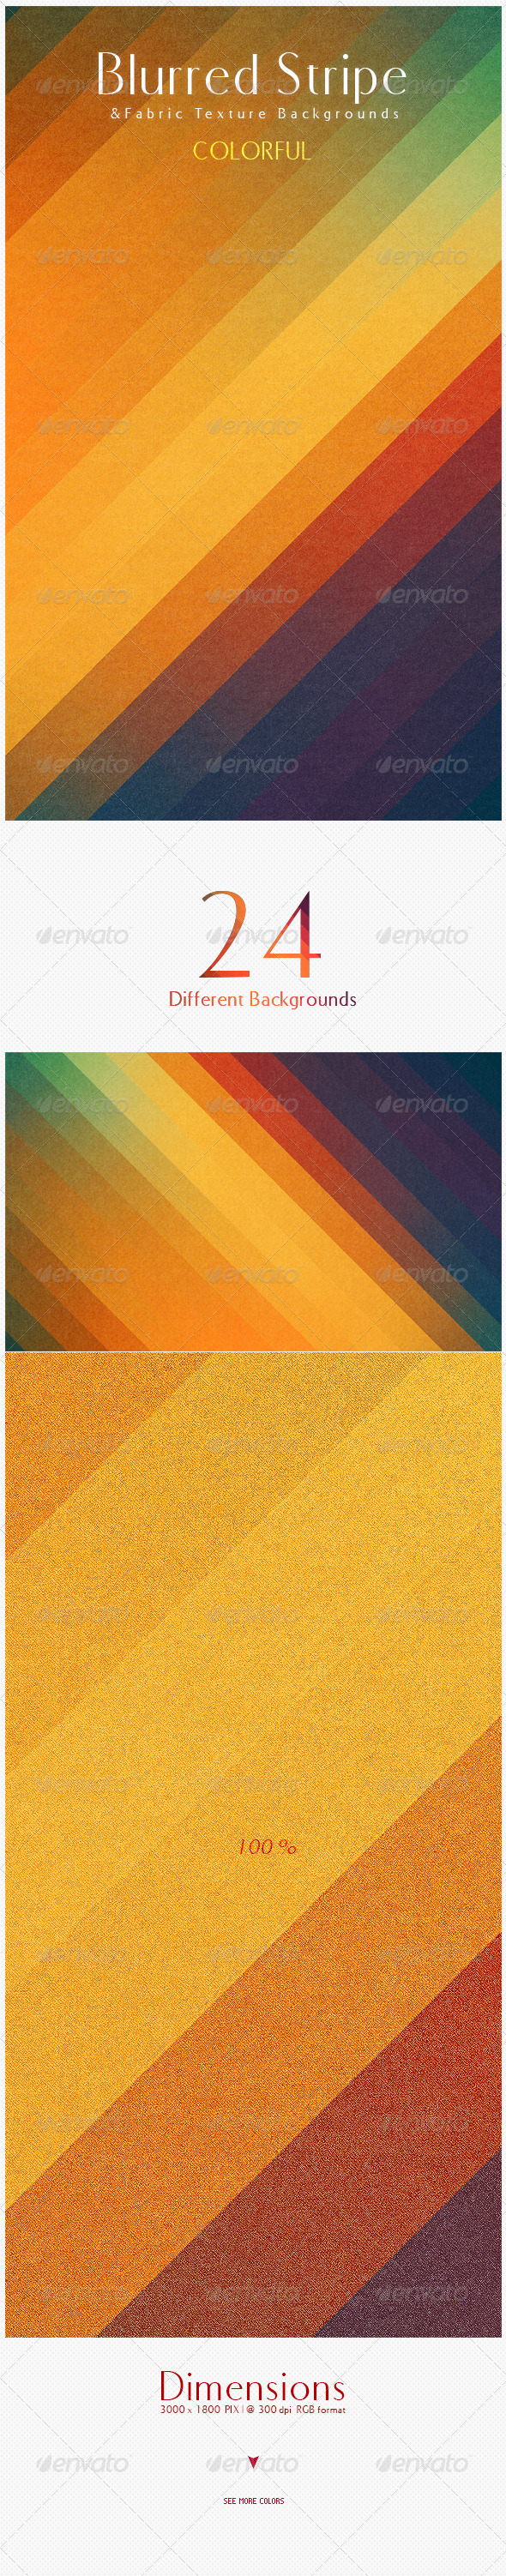 GraphicRiver Blurred Stripe & Fabric Texture Backgrounds 4351351